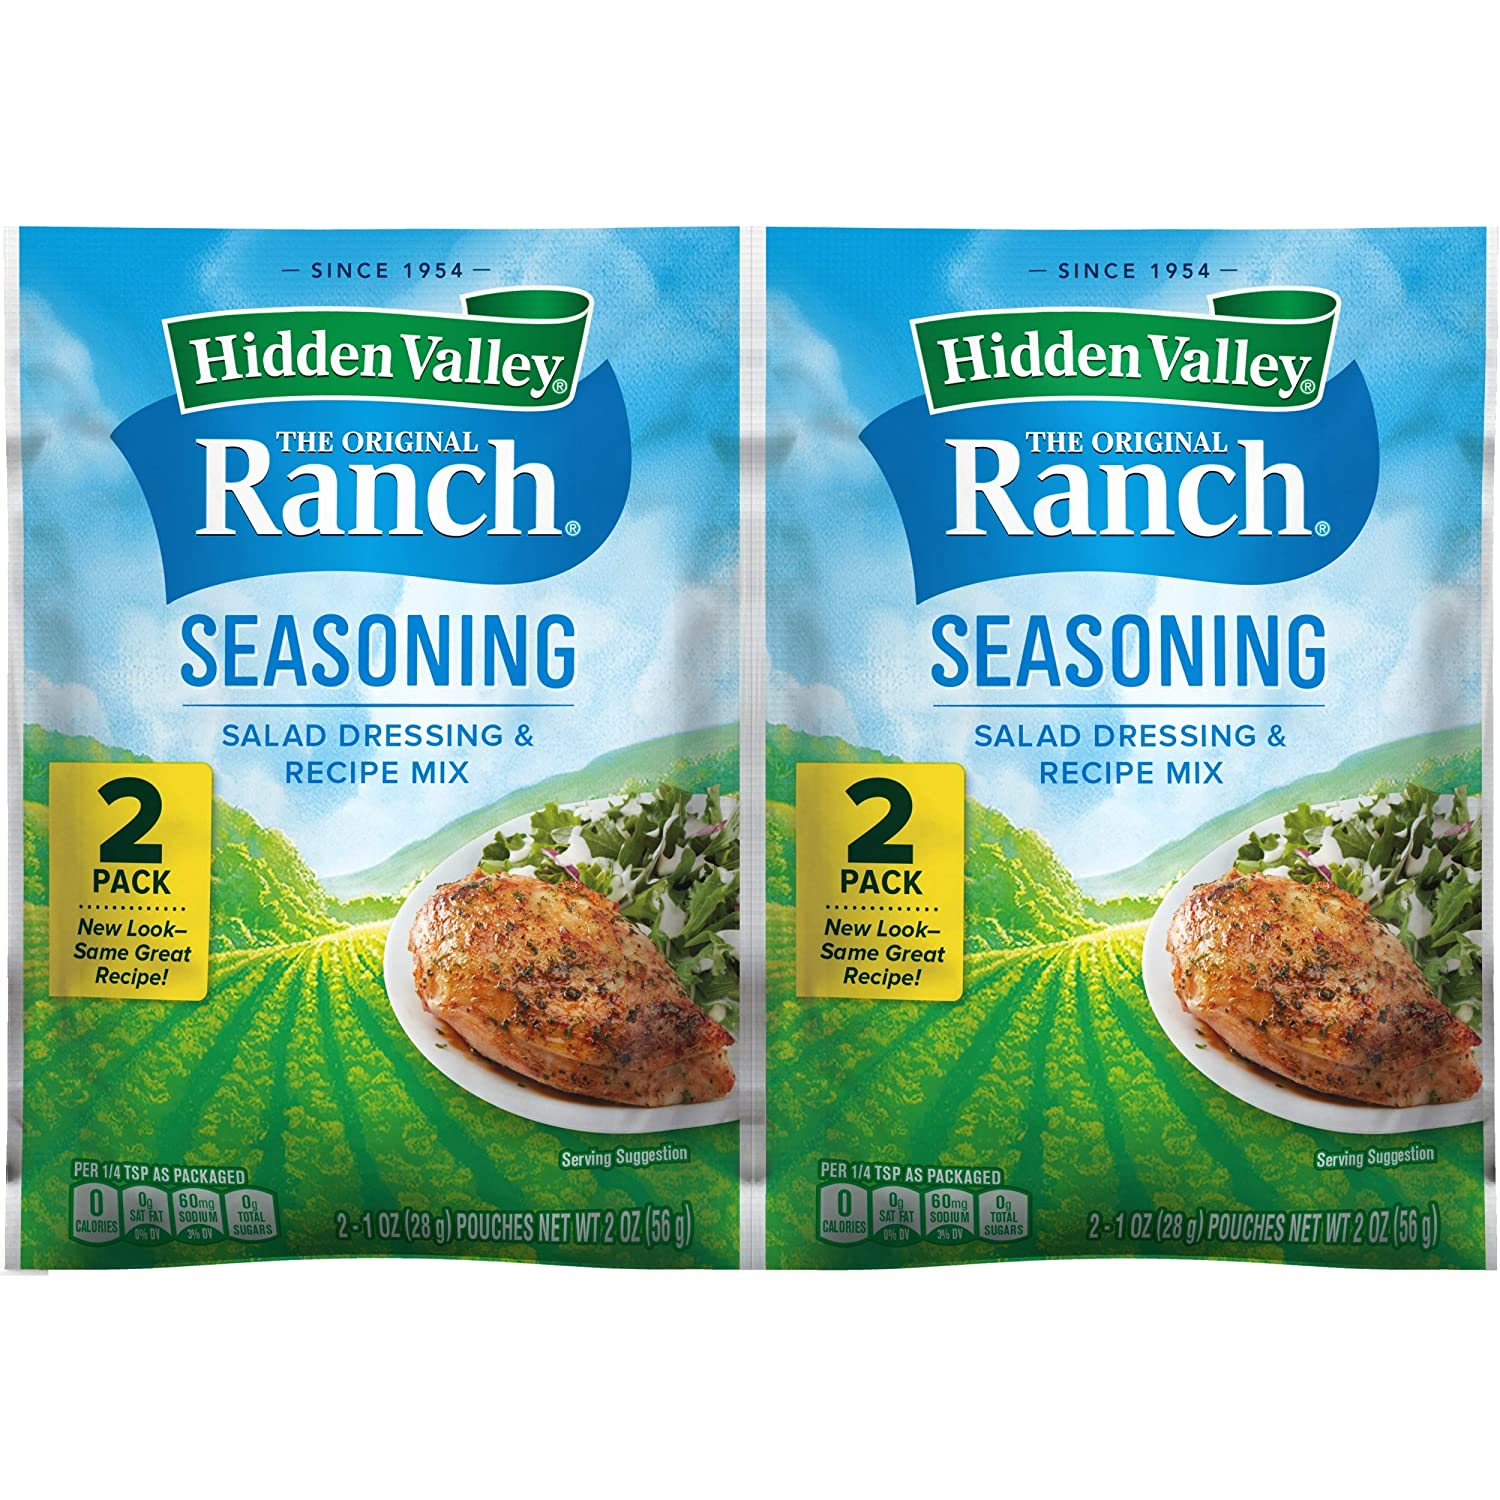 Hidden Valley The Original Ranch Salad Dressing & Recipe Seasoning Mix - 2 Pouches